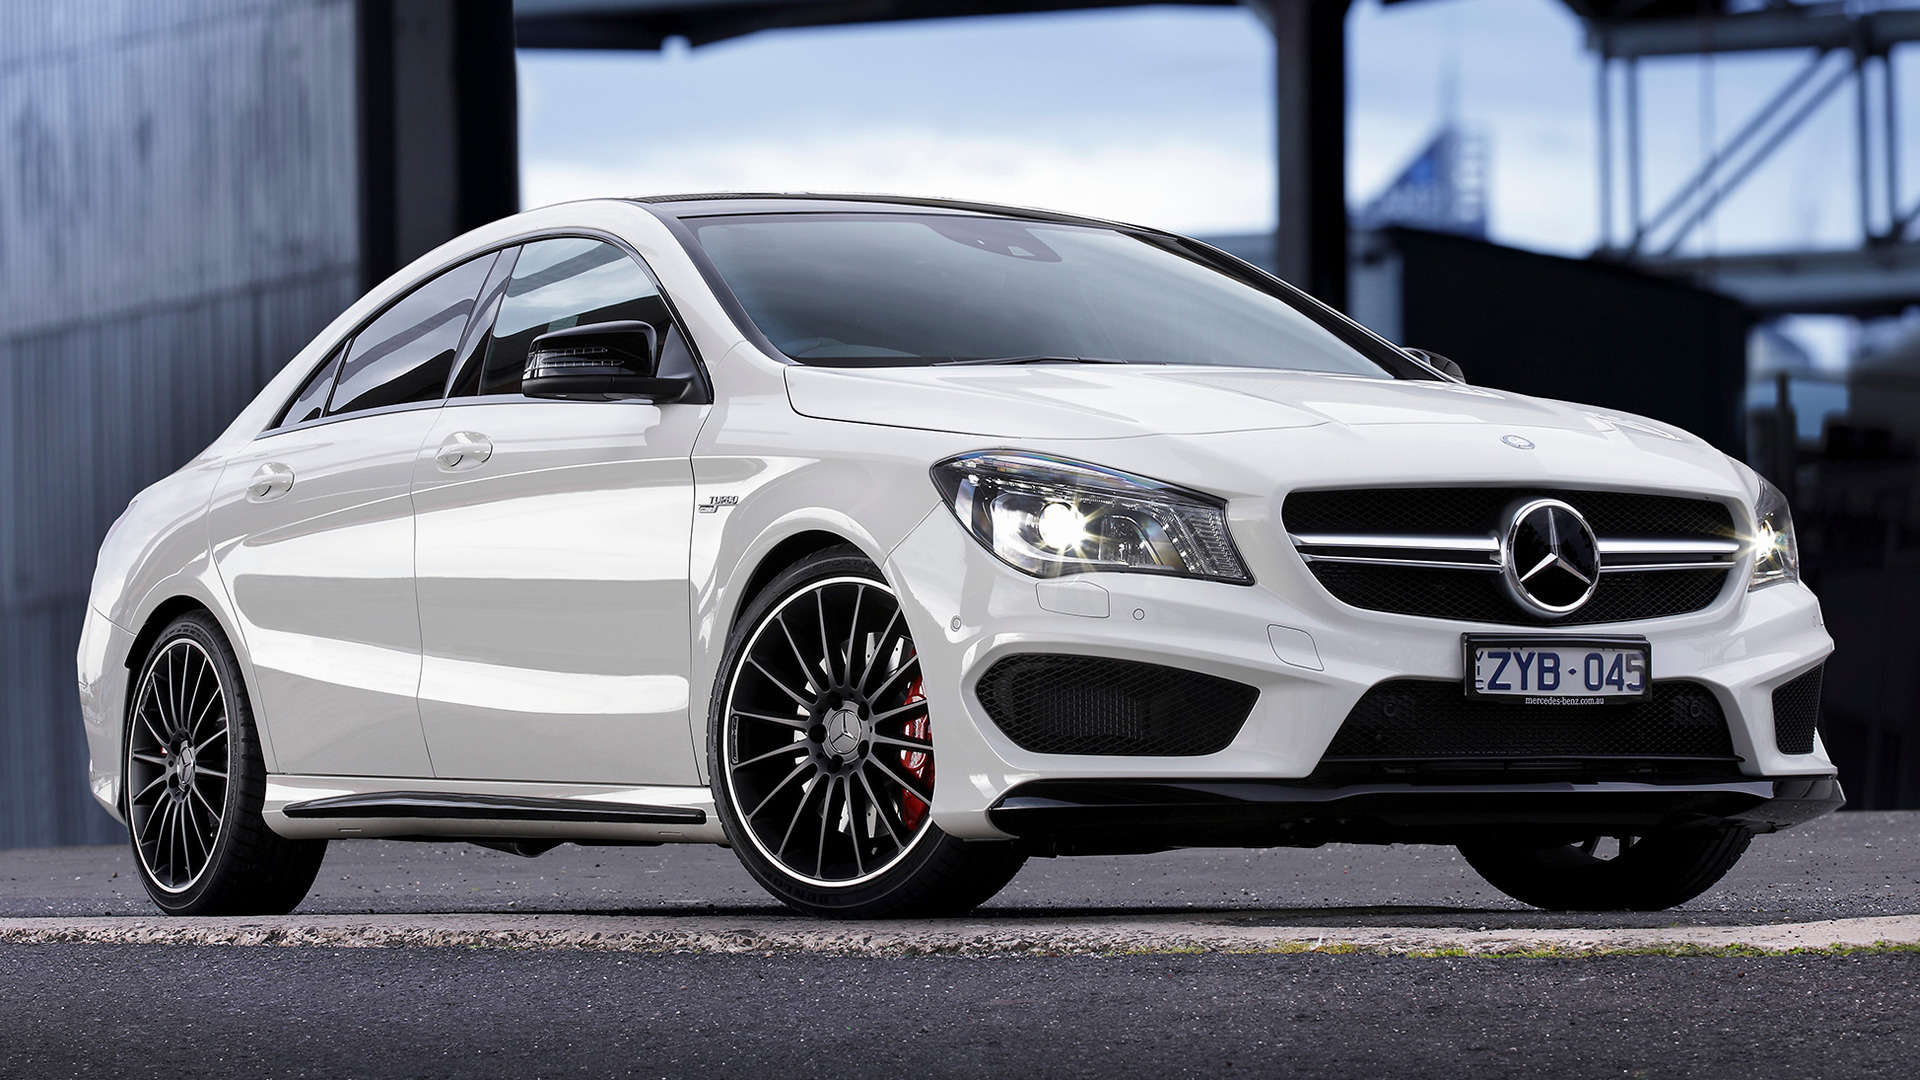 White Audi Car Wallpaper 2013 Mercedes Benz Cla 45 Amg Au Wallpapers And Hd